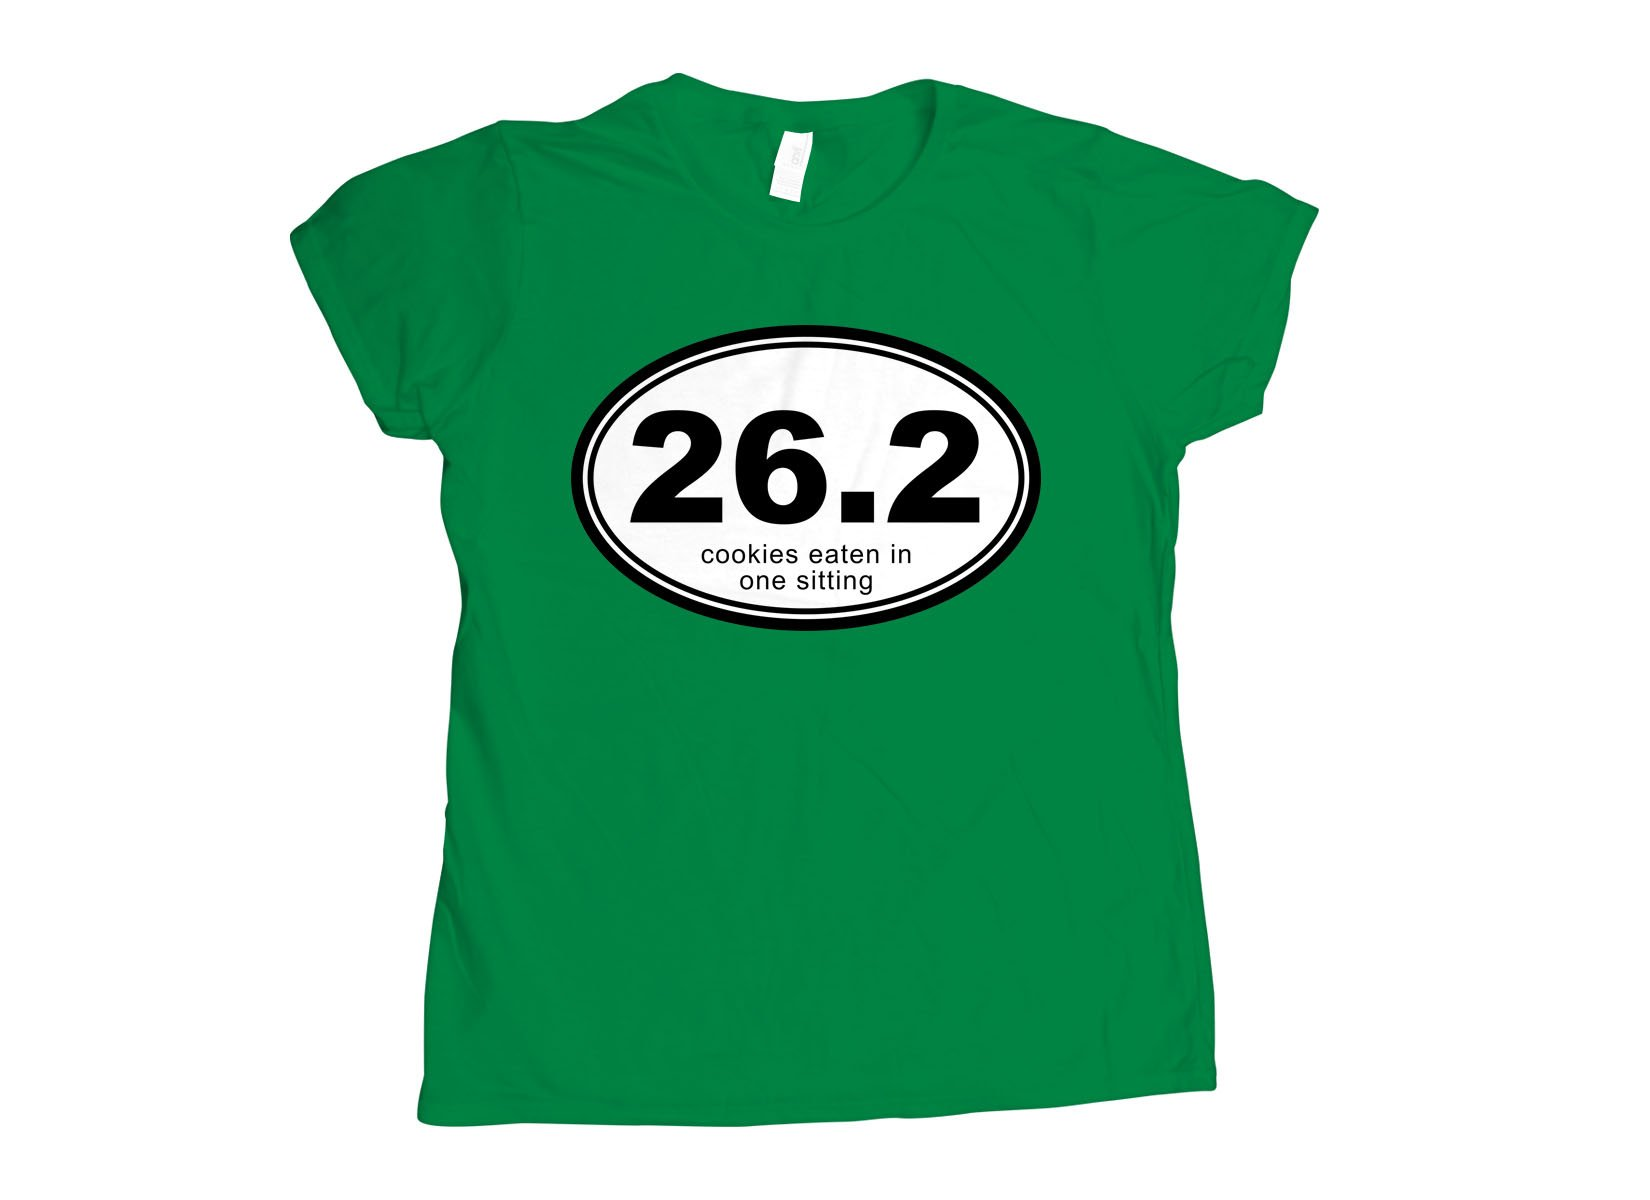 26.2 Cookies Eaten In One Sitting on Womens T-Shirt